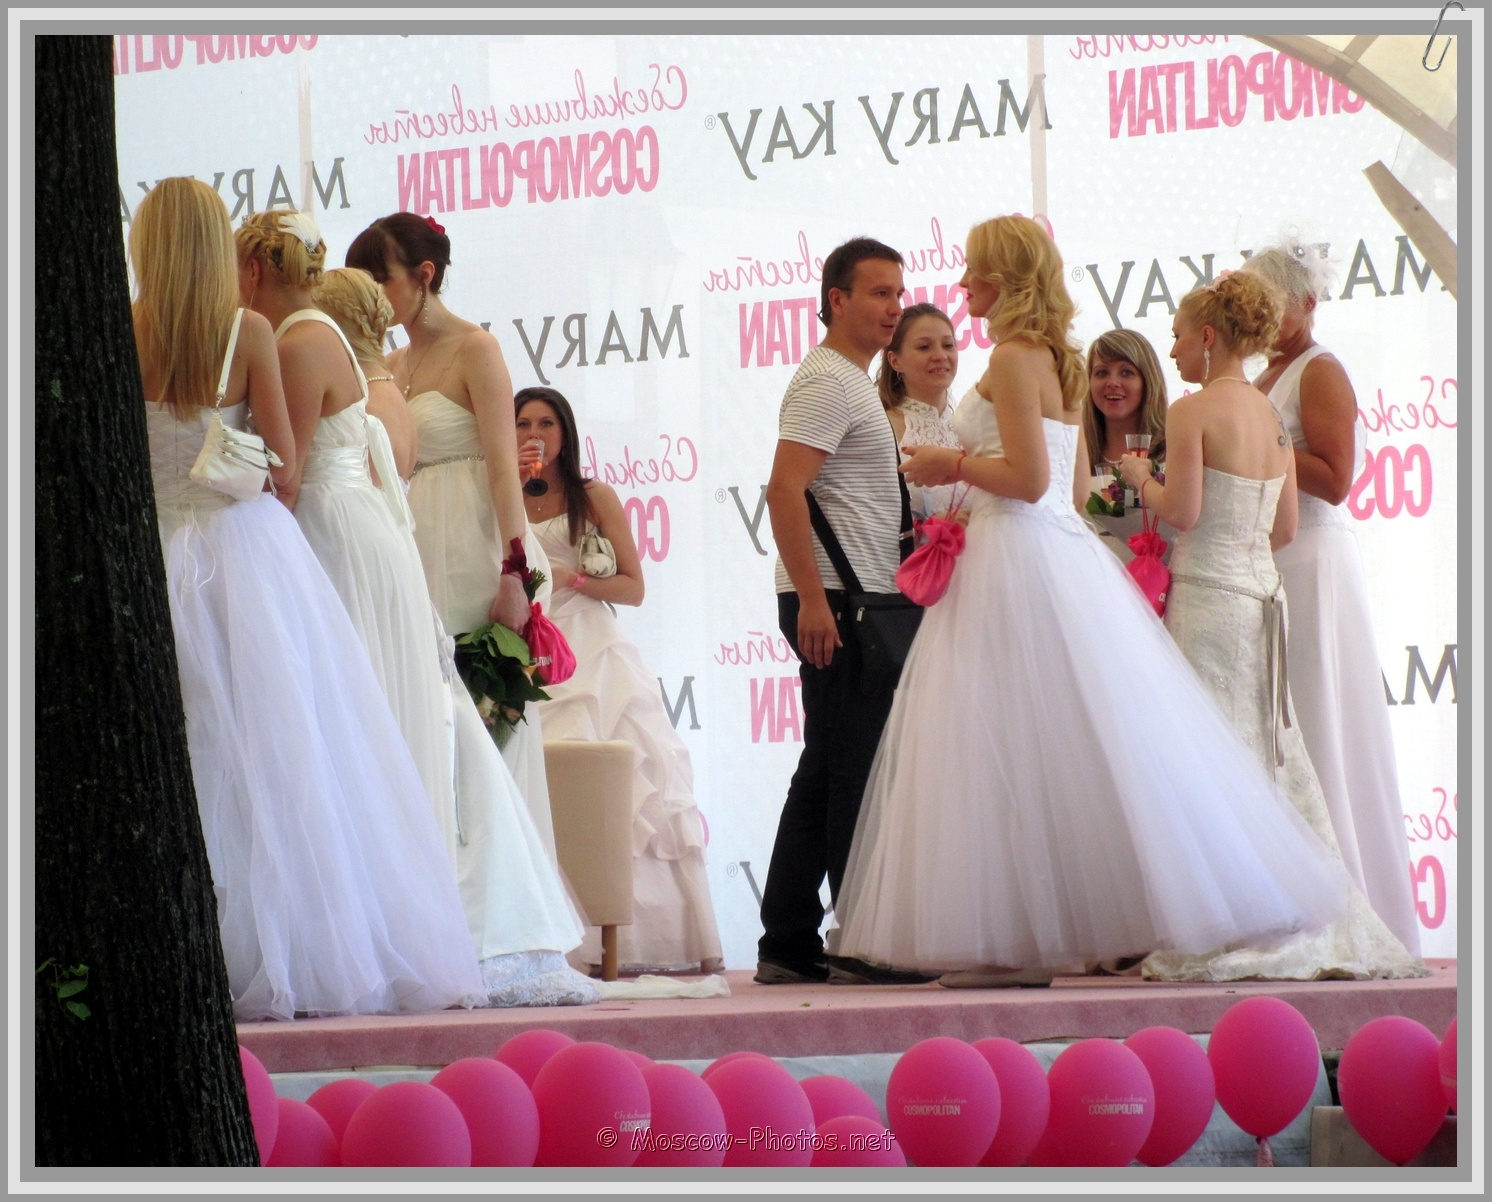 Moscow Runaway Brides and Pink Balls